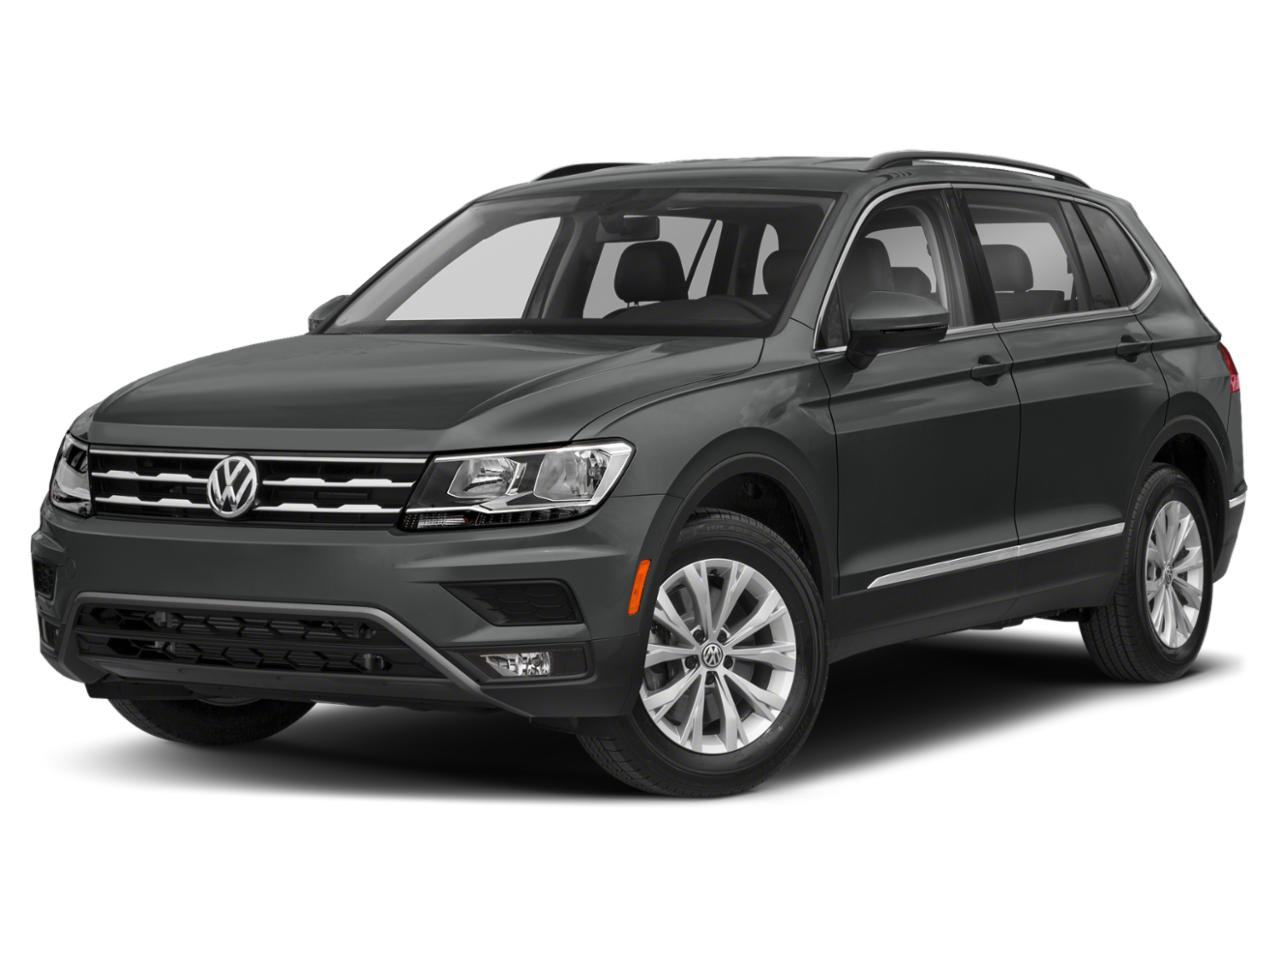 2019 Volkswagen Tiguan Vehicle Photo in Plainfield, IL 60586